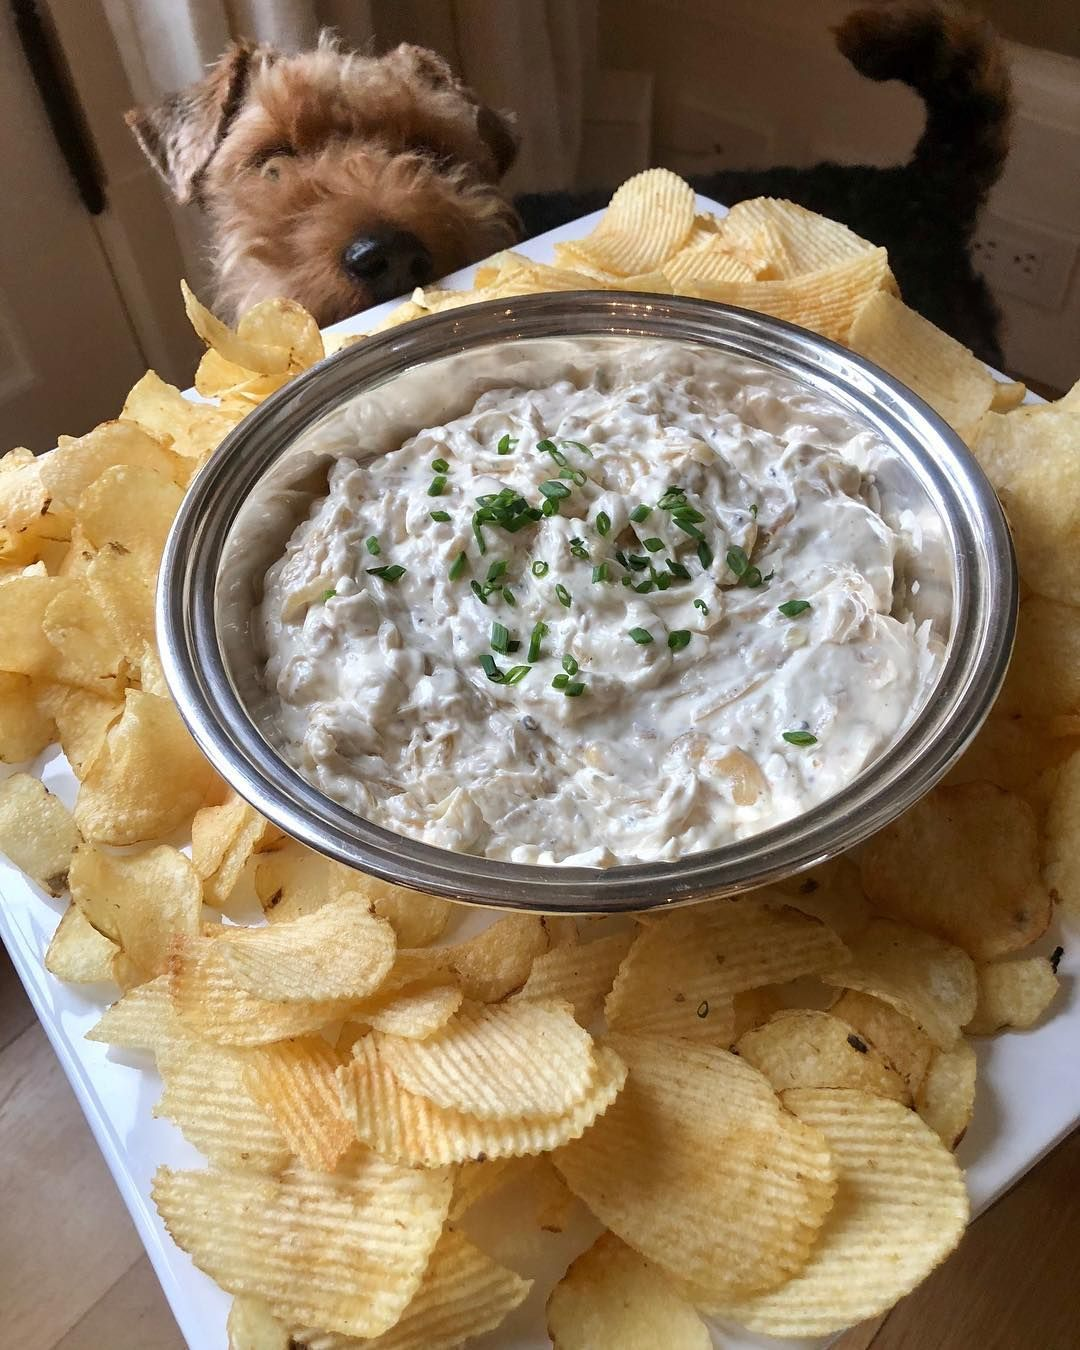 Ina Garten Just Shared Her Dip Recipe for the Super Bowl